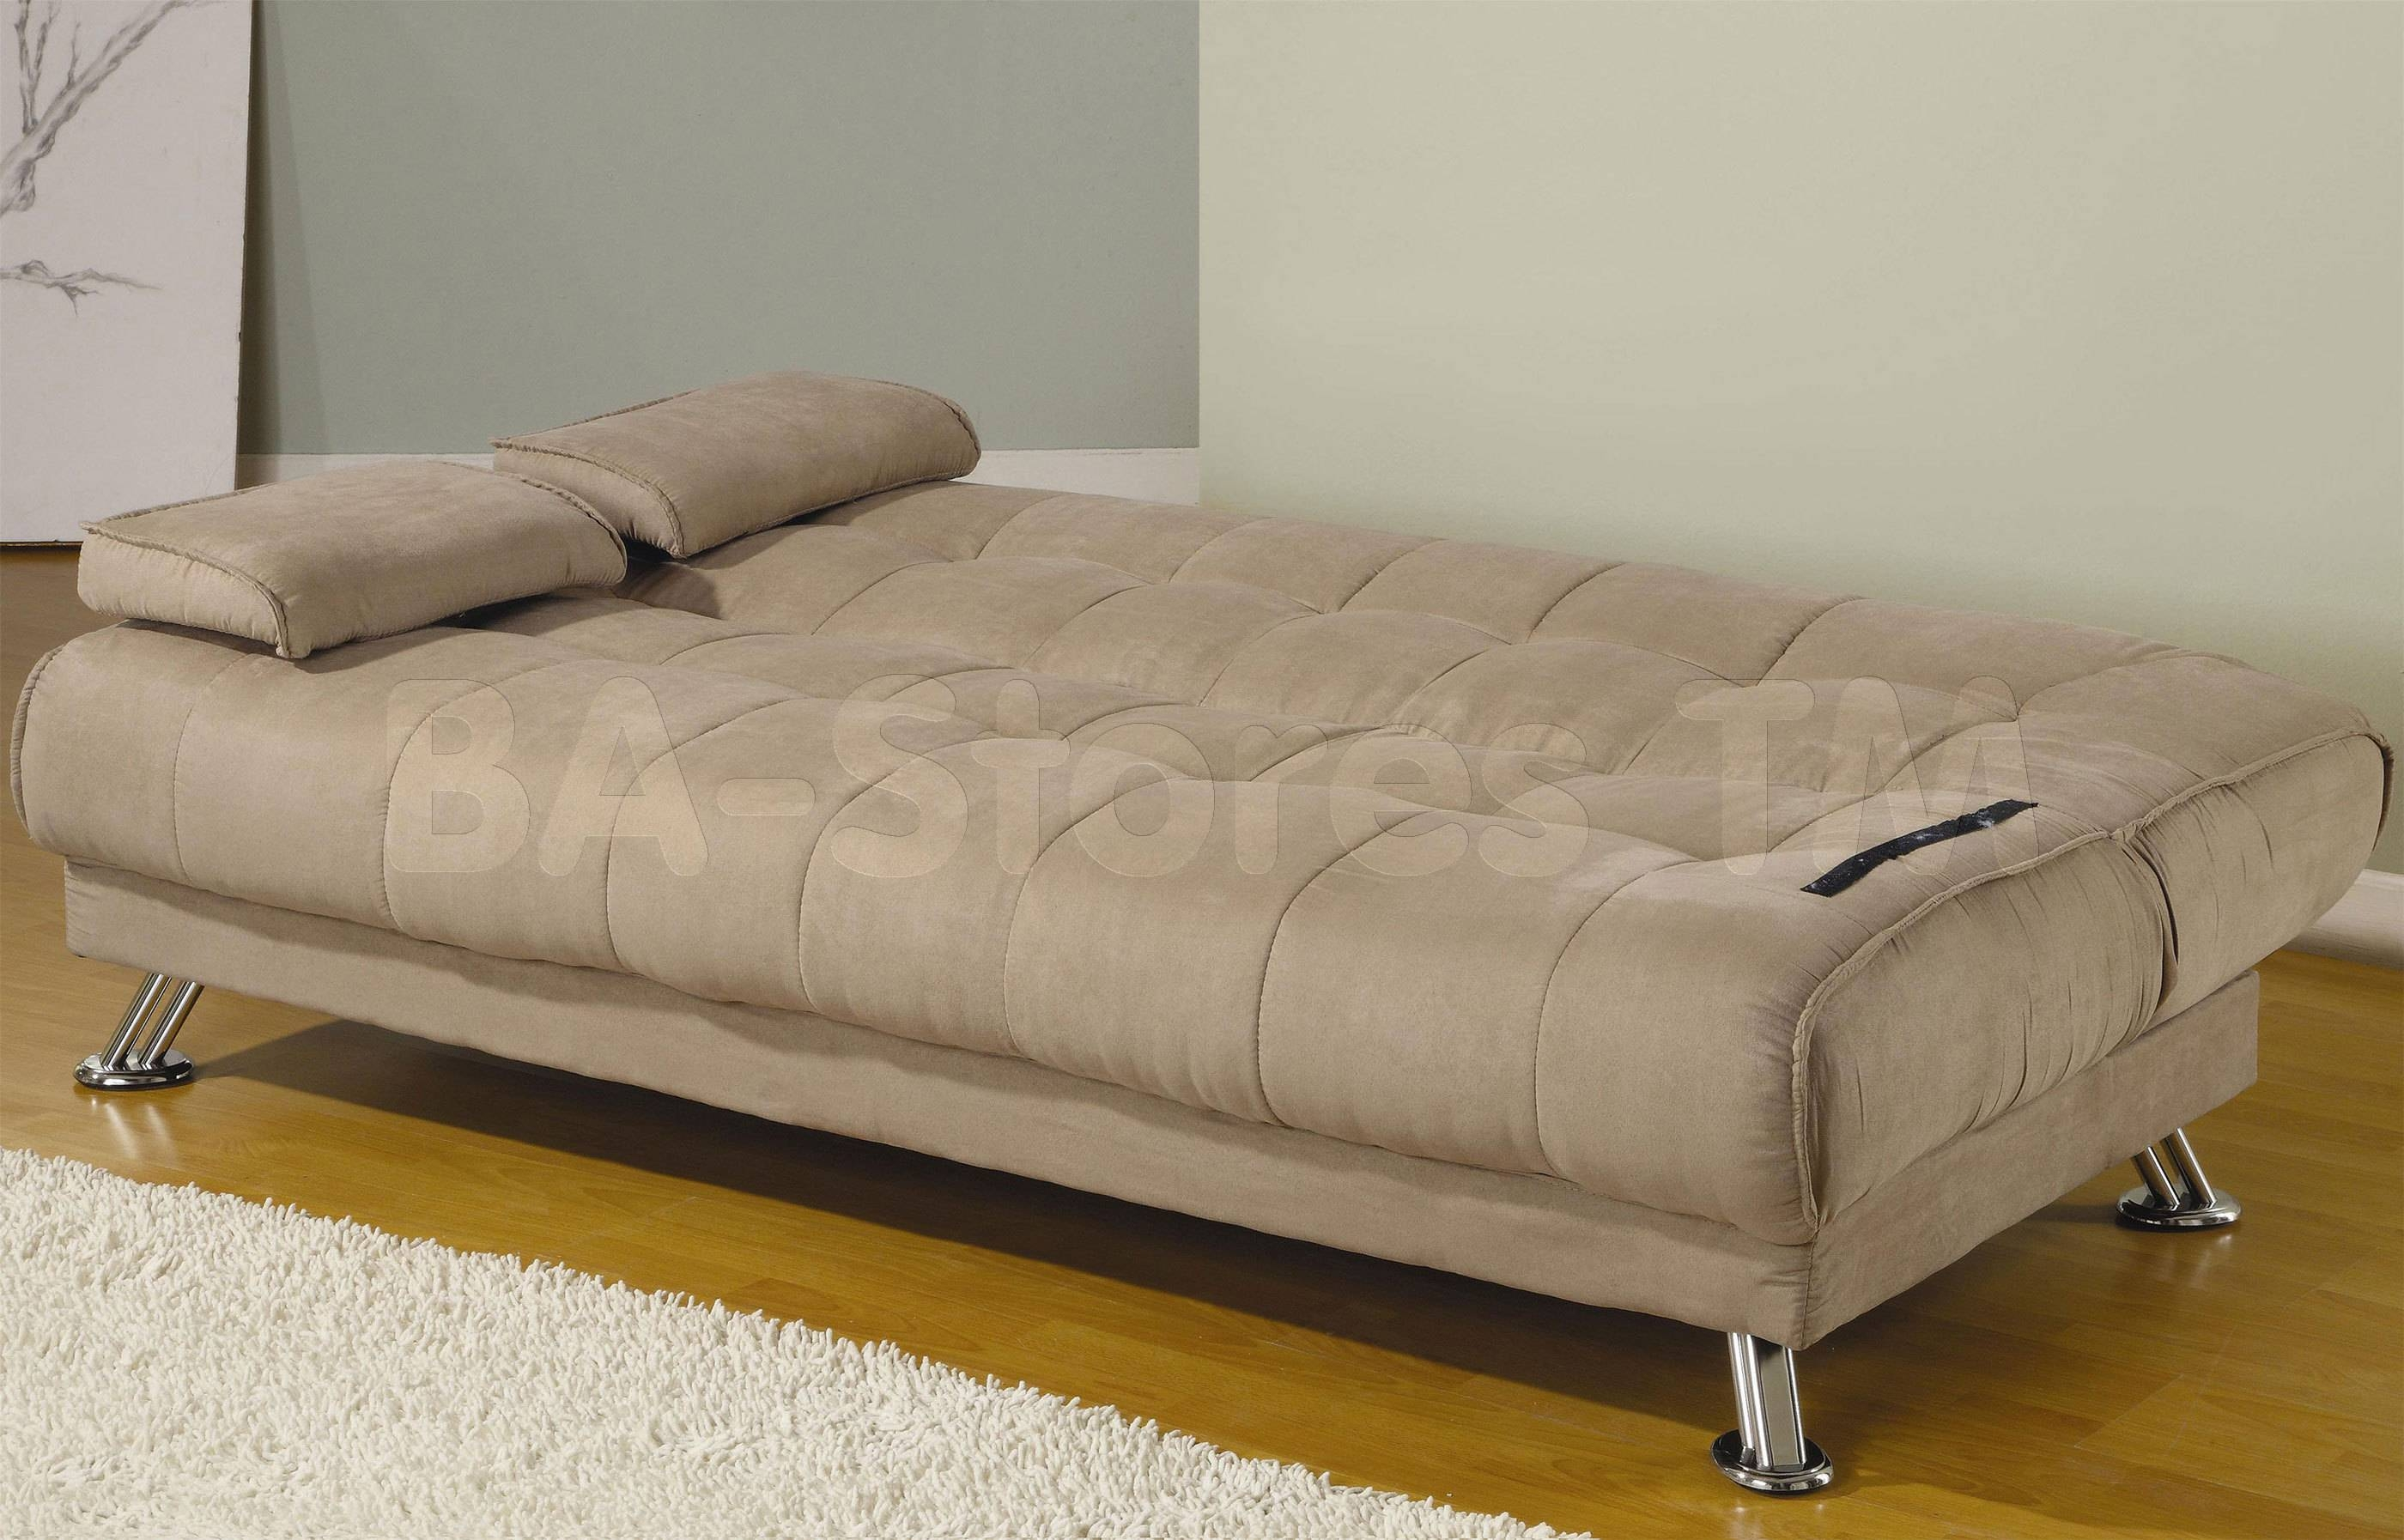 Full sheets for sofa bed mjob blog for Sofa bed zuza